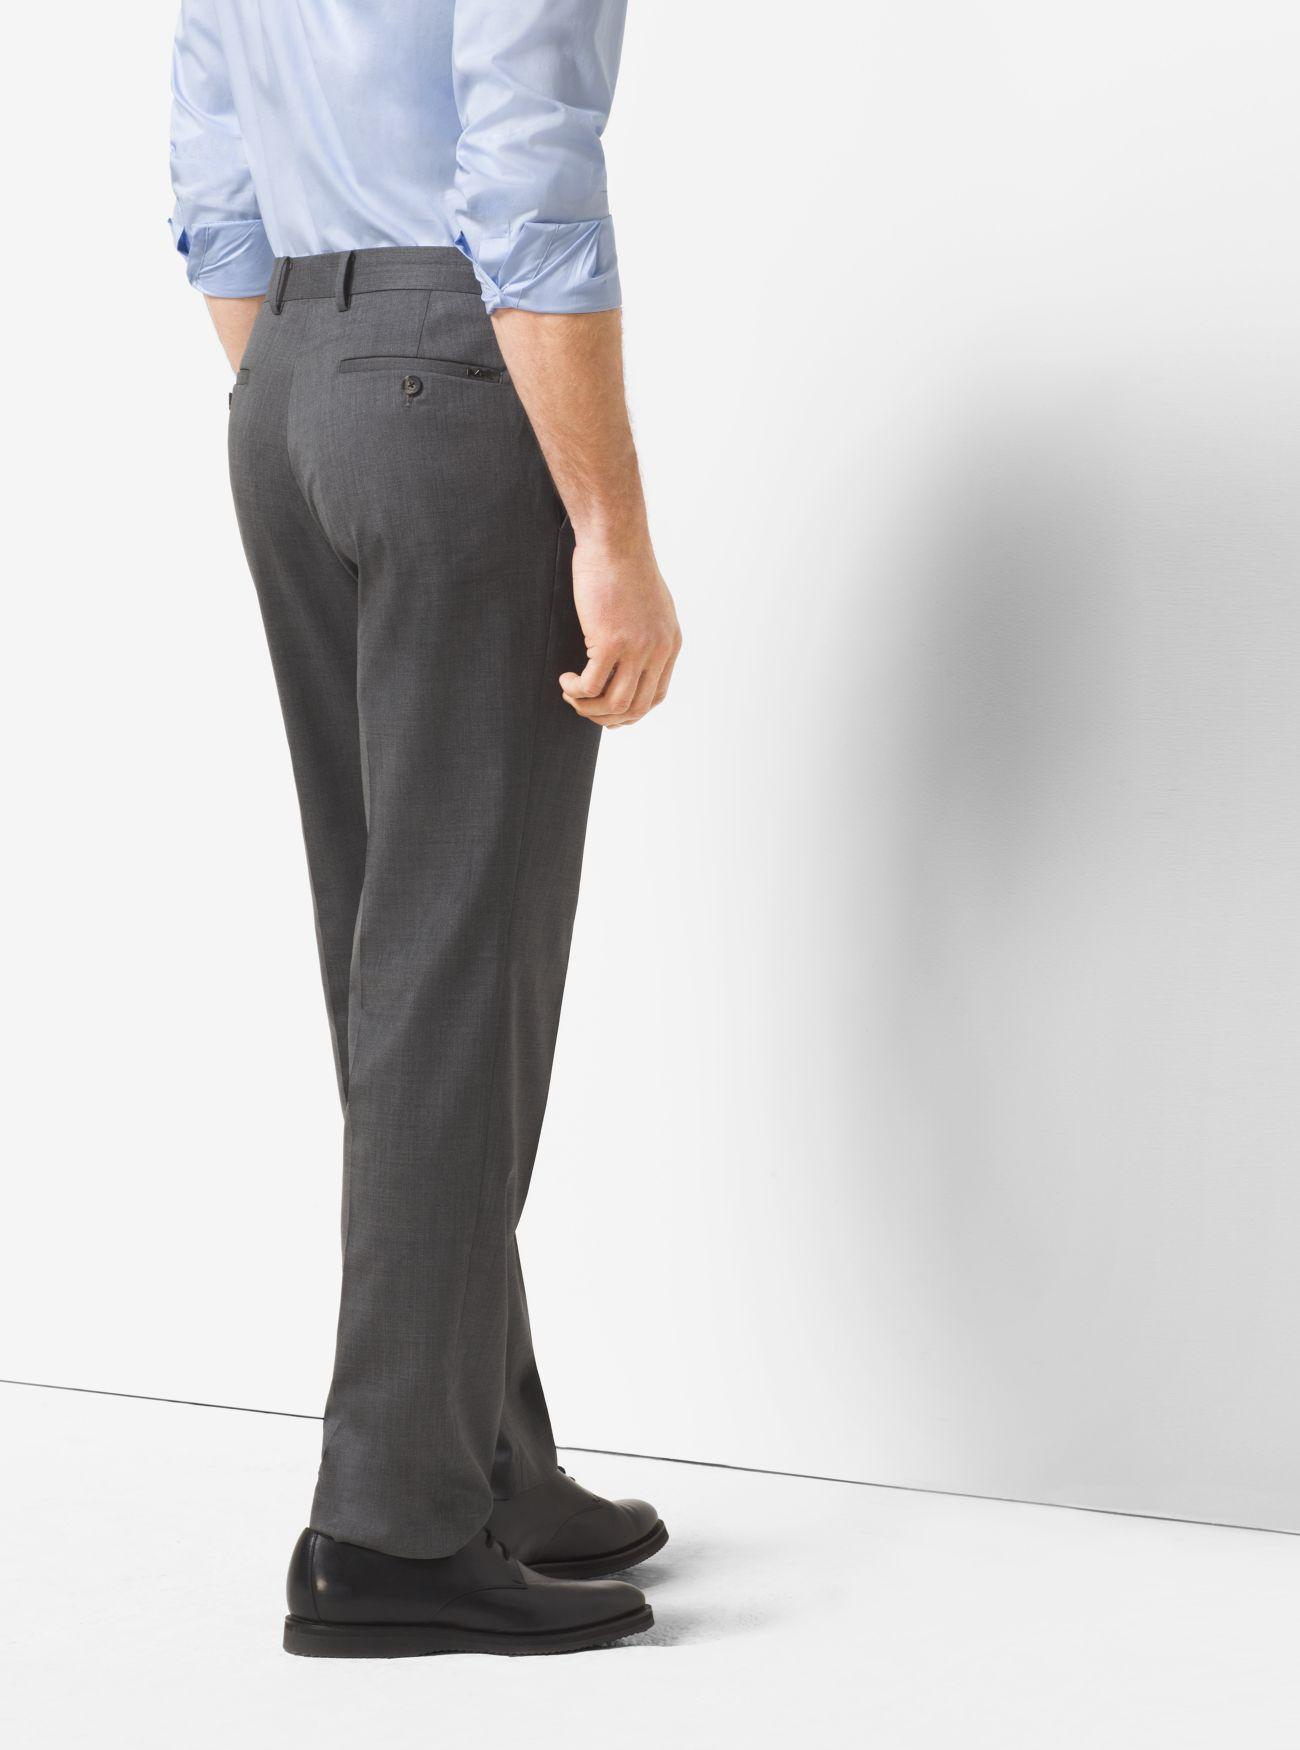 Michael Kors Tailored/classic-fit Wool Trousers in Grey for Men